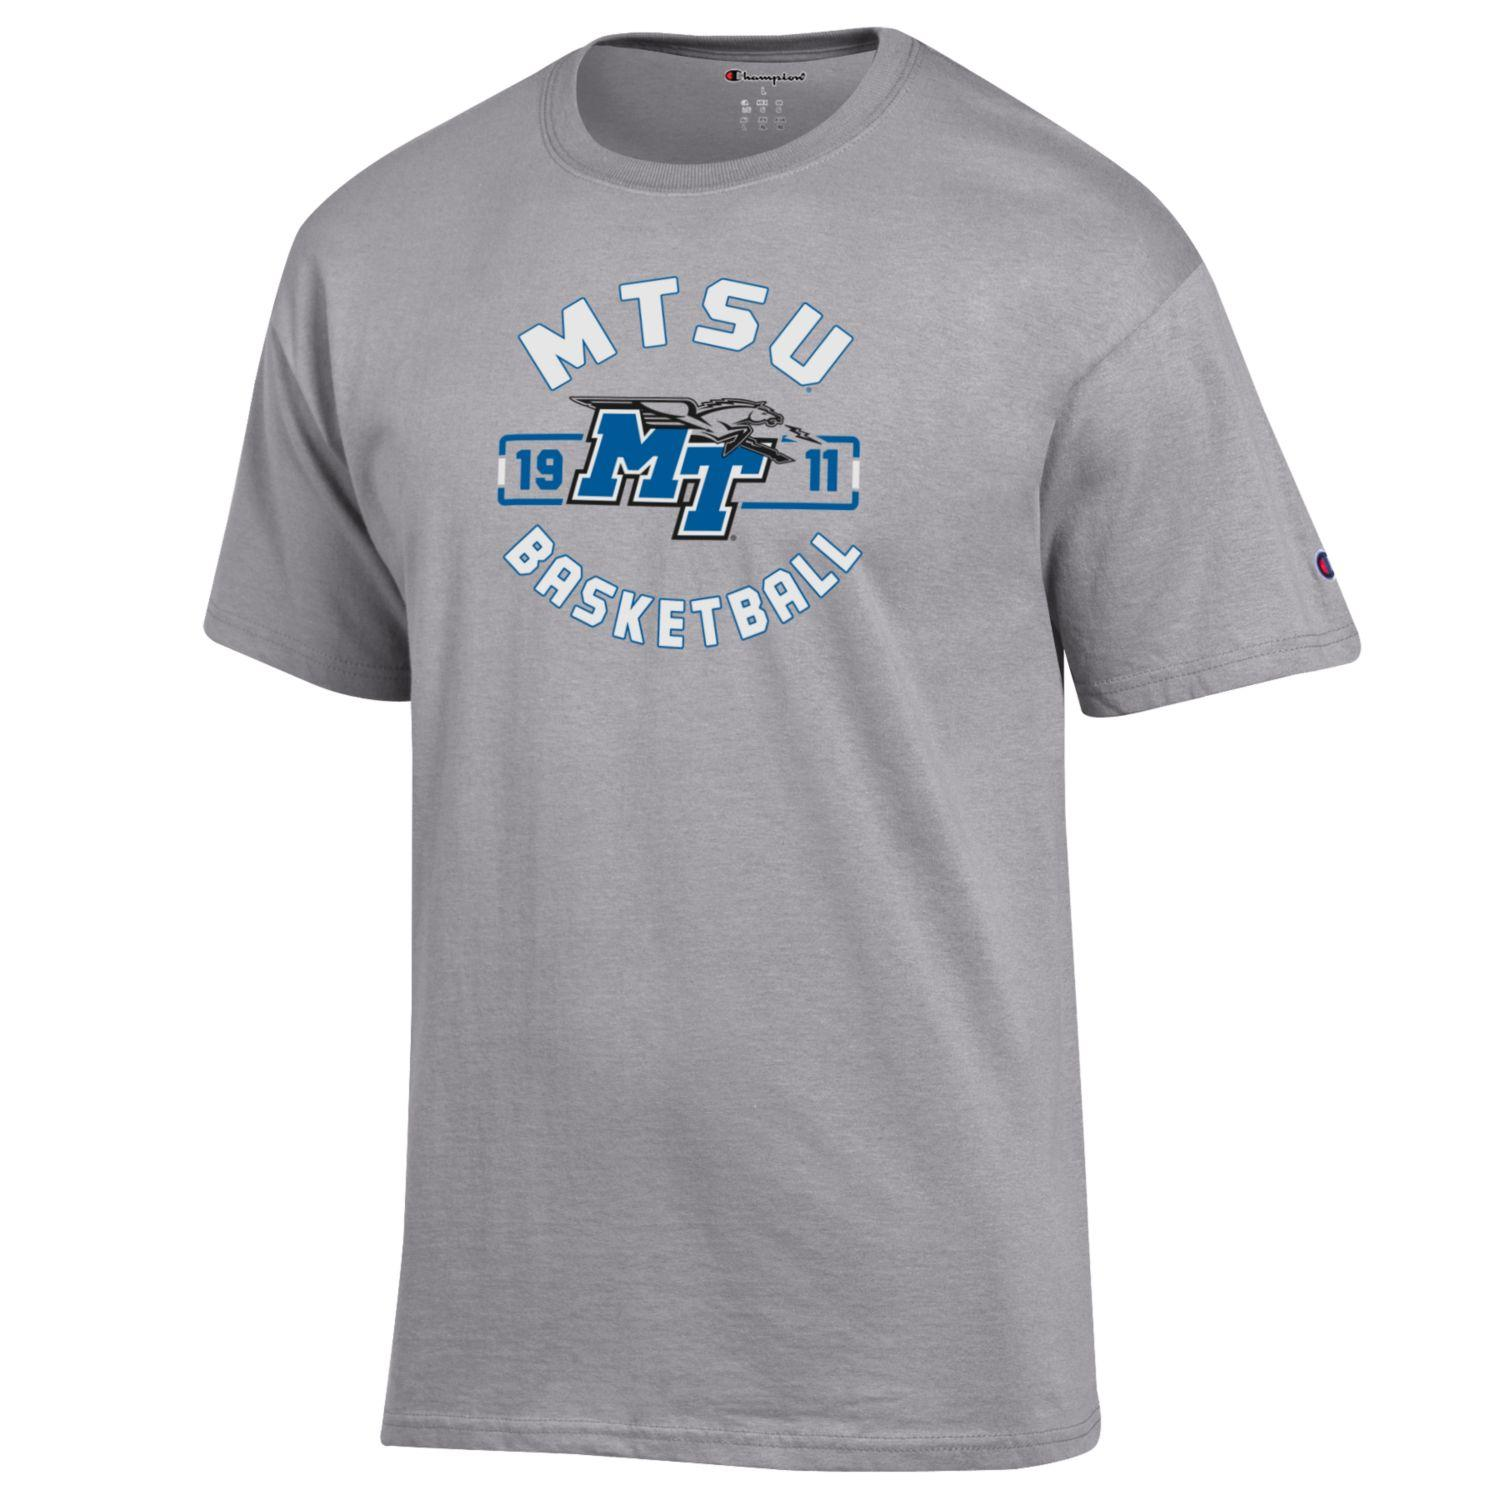 MTSU 1911 Basketball Tshirt